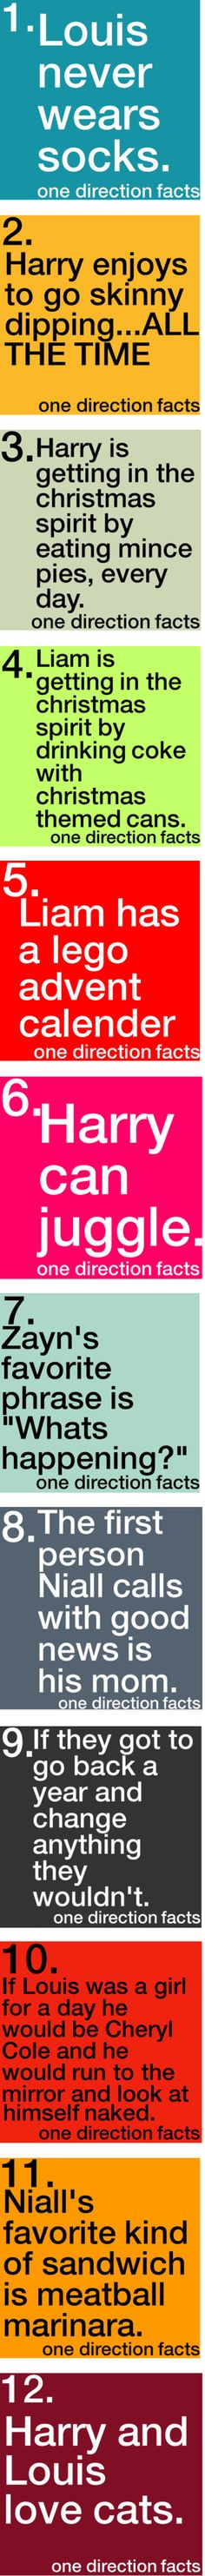 """One Direction Facts {part one}"" by onedirectionfacts ❤ liked on Polyvore"